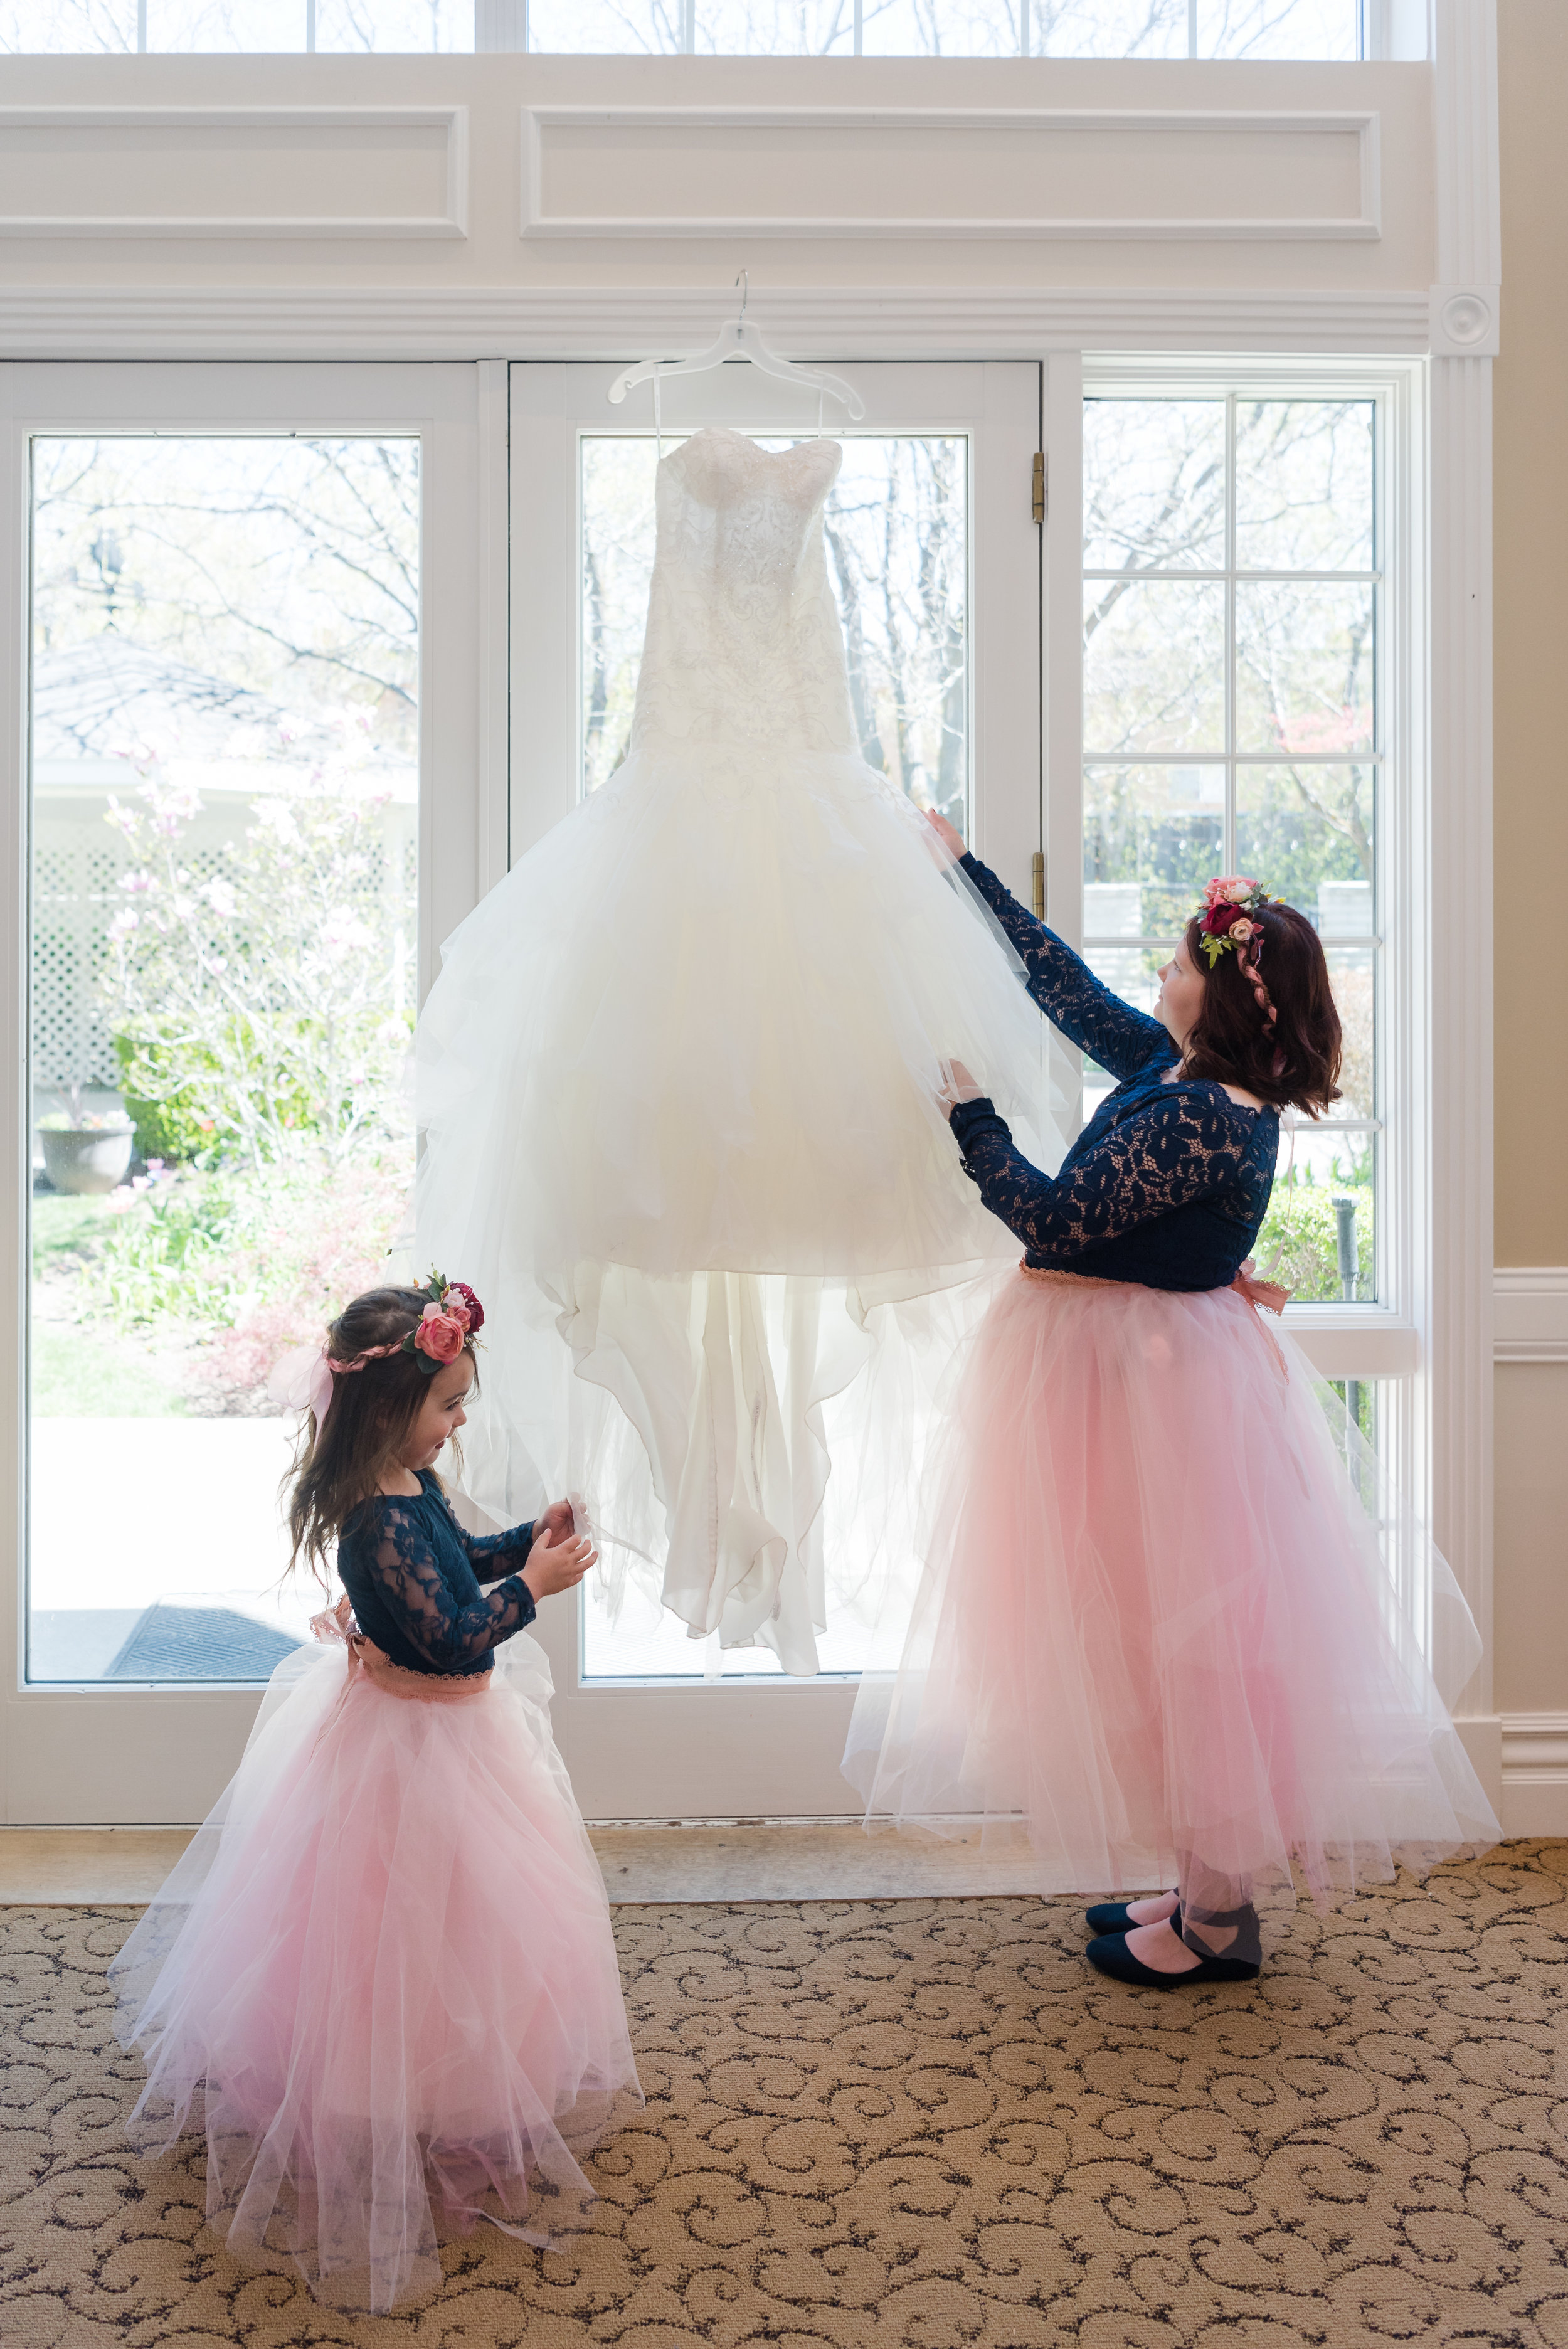 While taking pictures of the brides dress the flower girls wanted to see and help. One day girls, it will be your turn to be the bride!